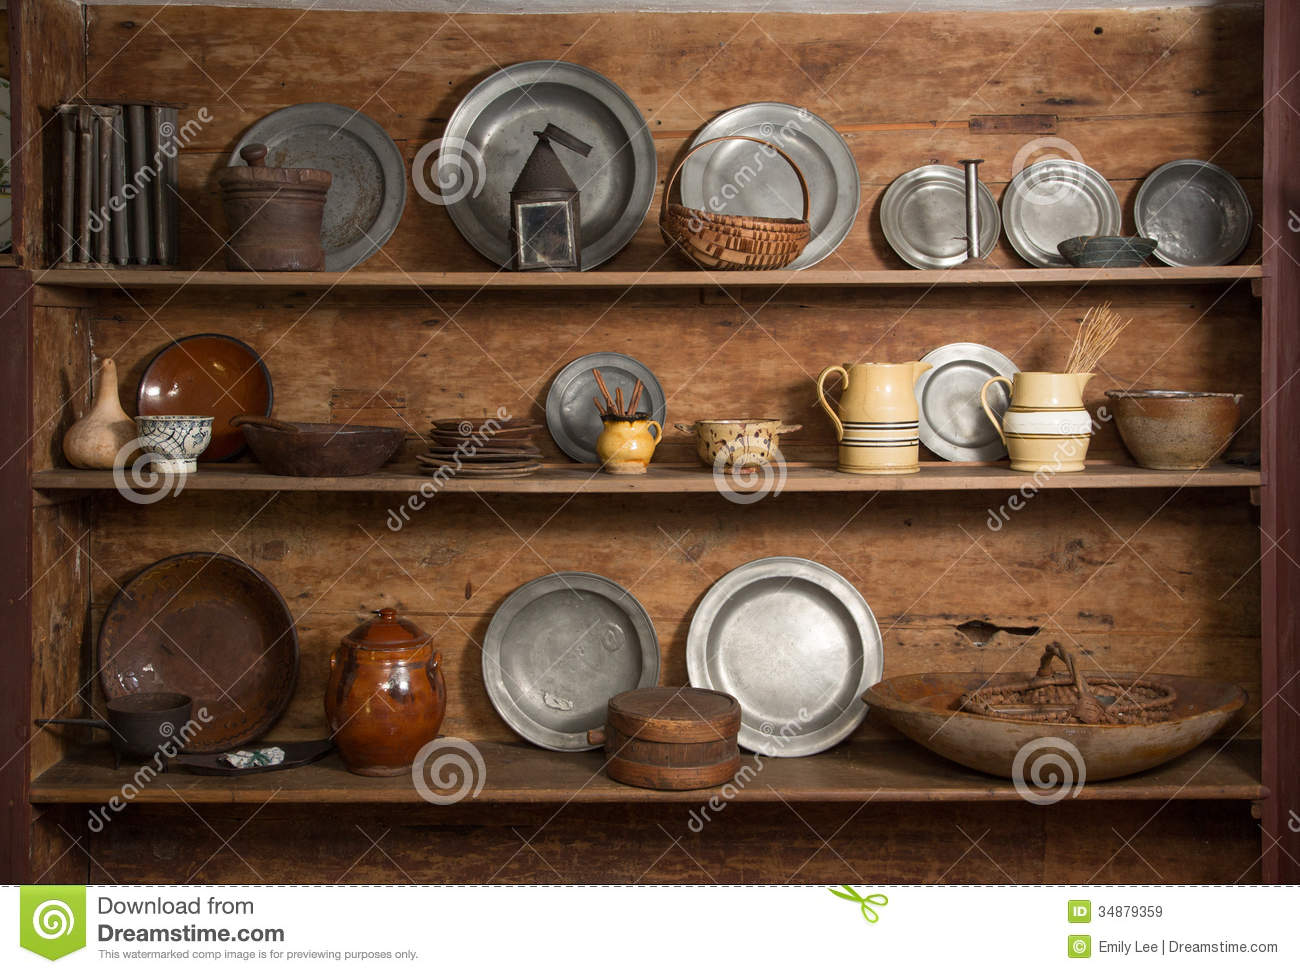 Antiques on display royalty free stock images image for Displaying pictures in your home